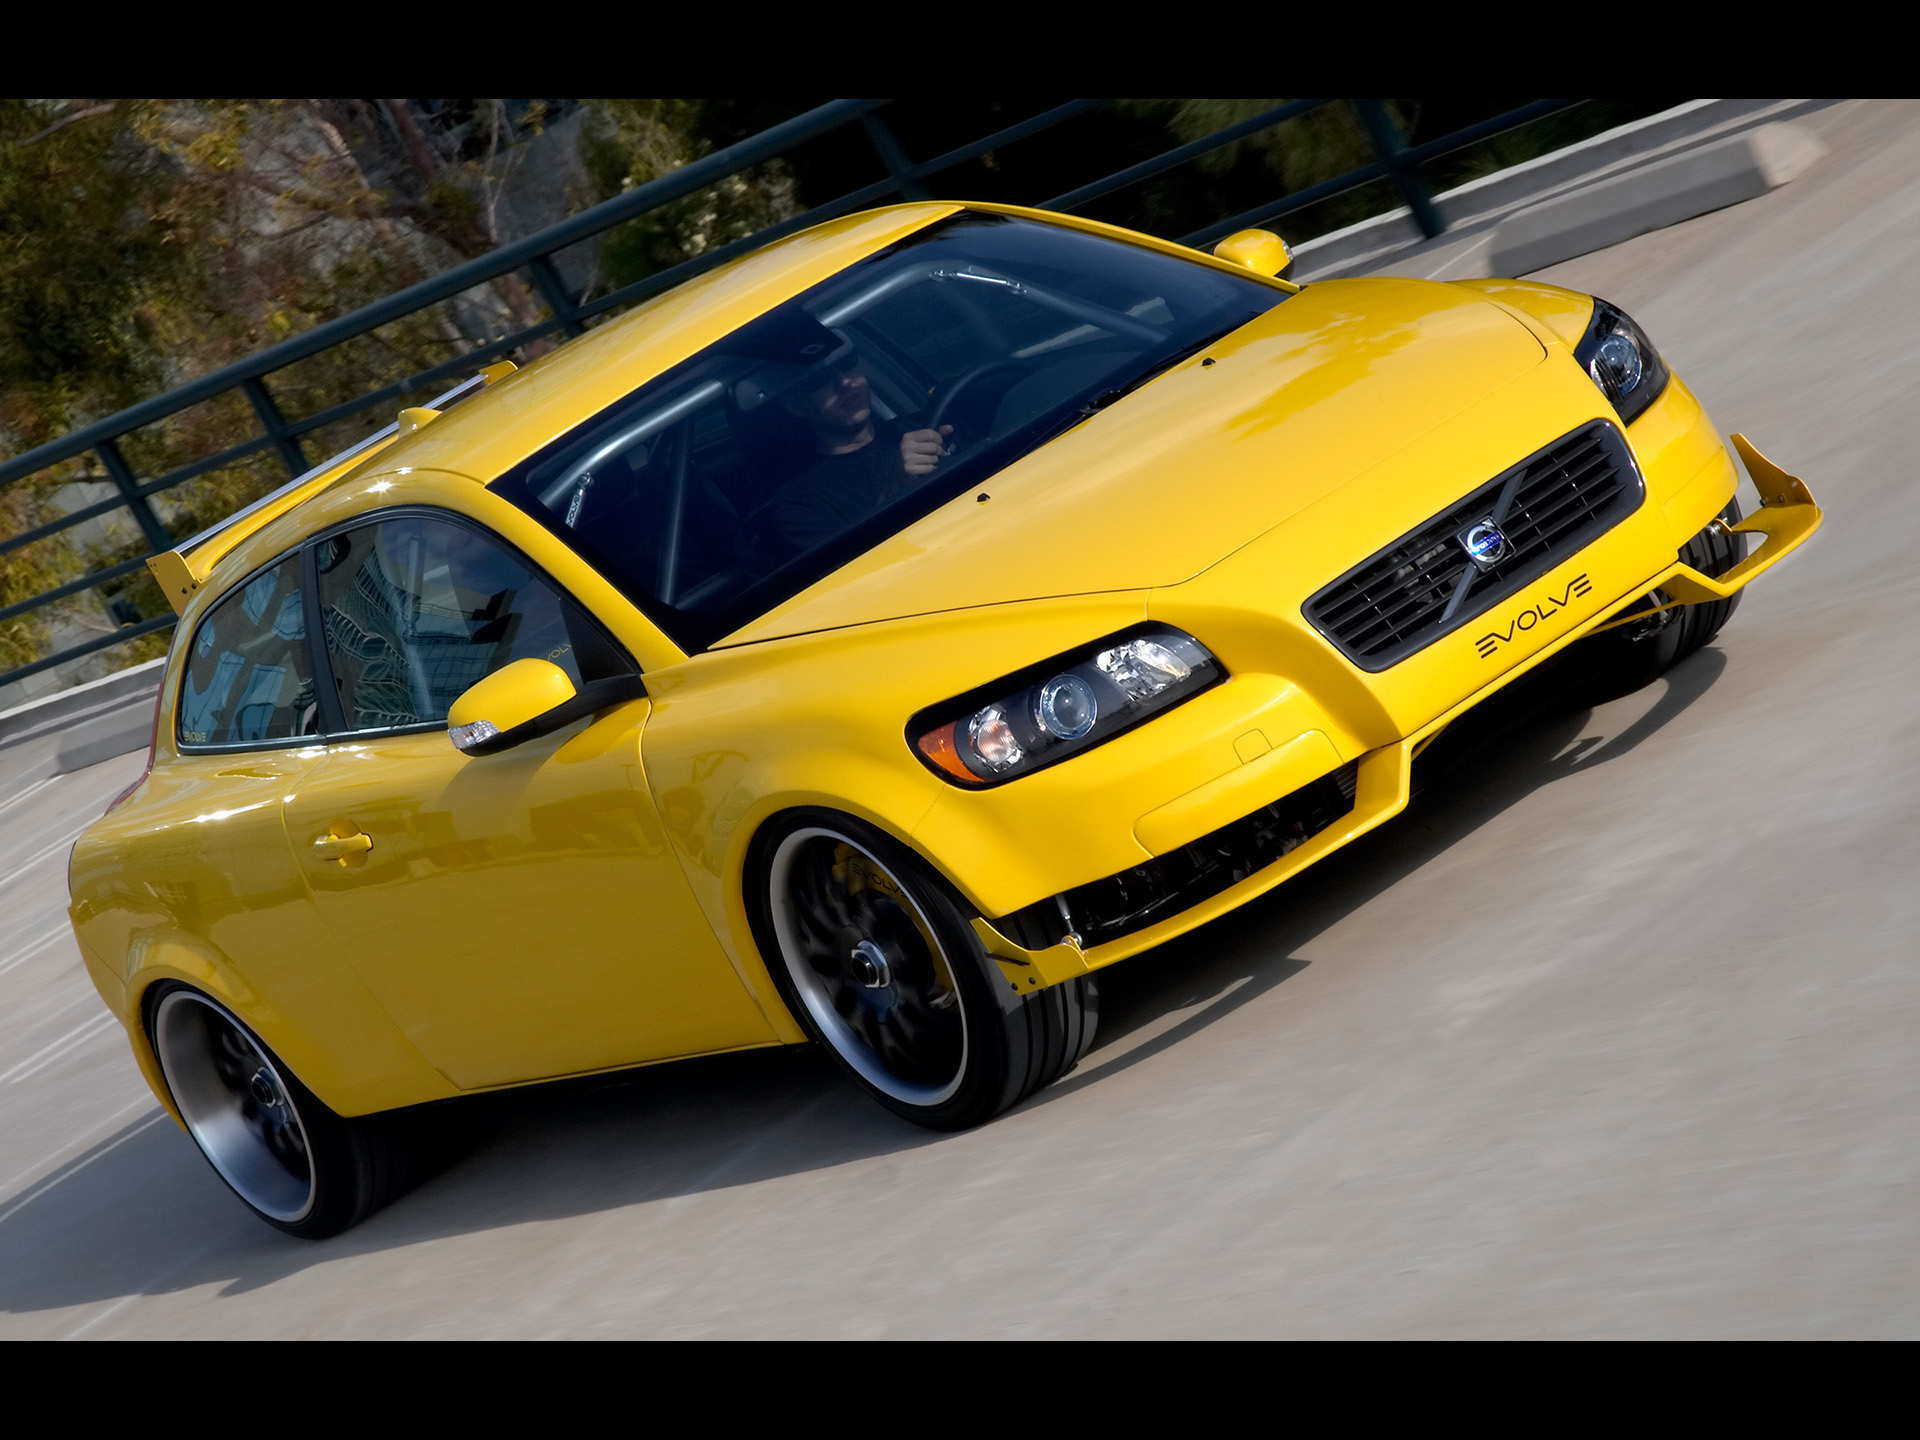 2006 Evolve C30 Concept History, Pictures, Value, Auction Sales, Research and News